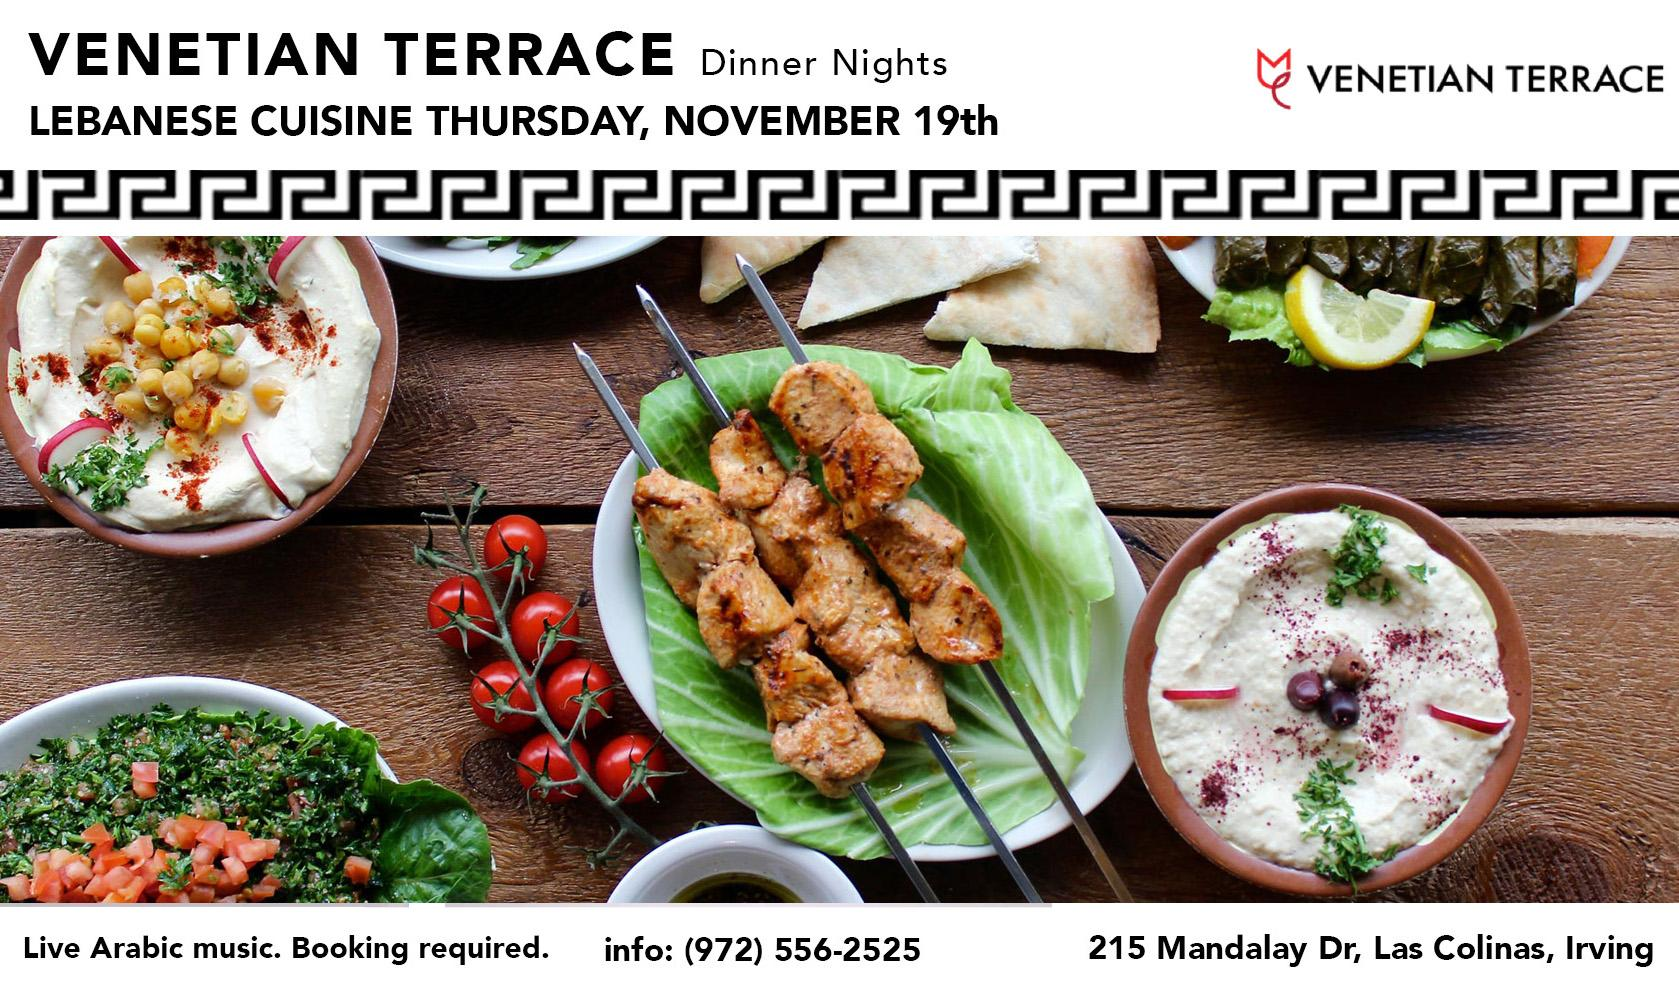 Venetian Terrace LEBANESE Dinner Nights